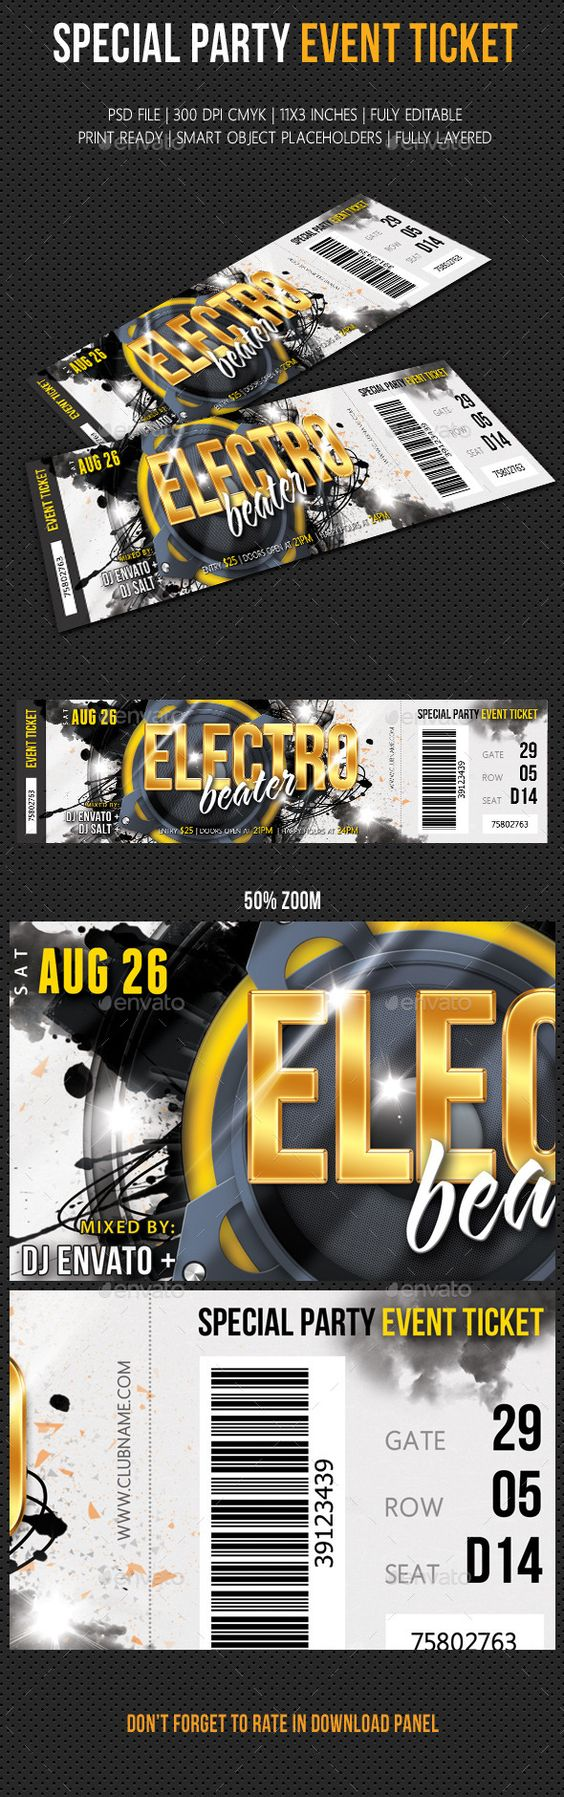 event ticket design ticket designs and more party events parties event